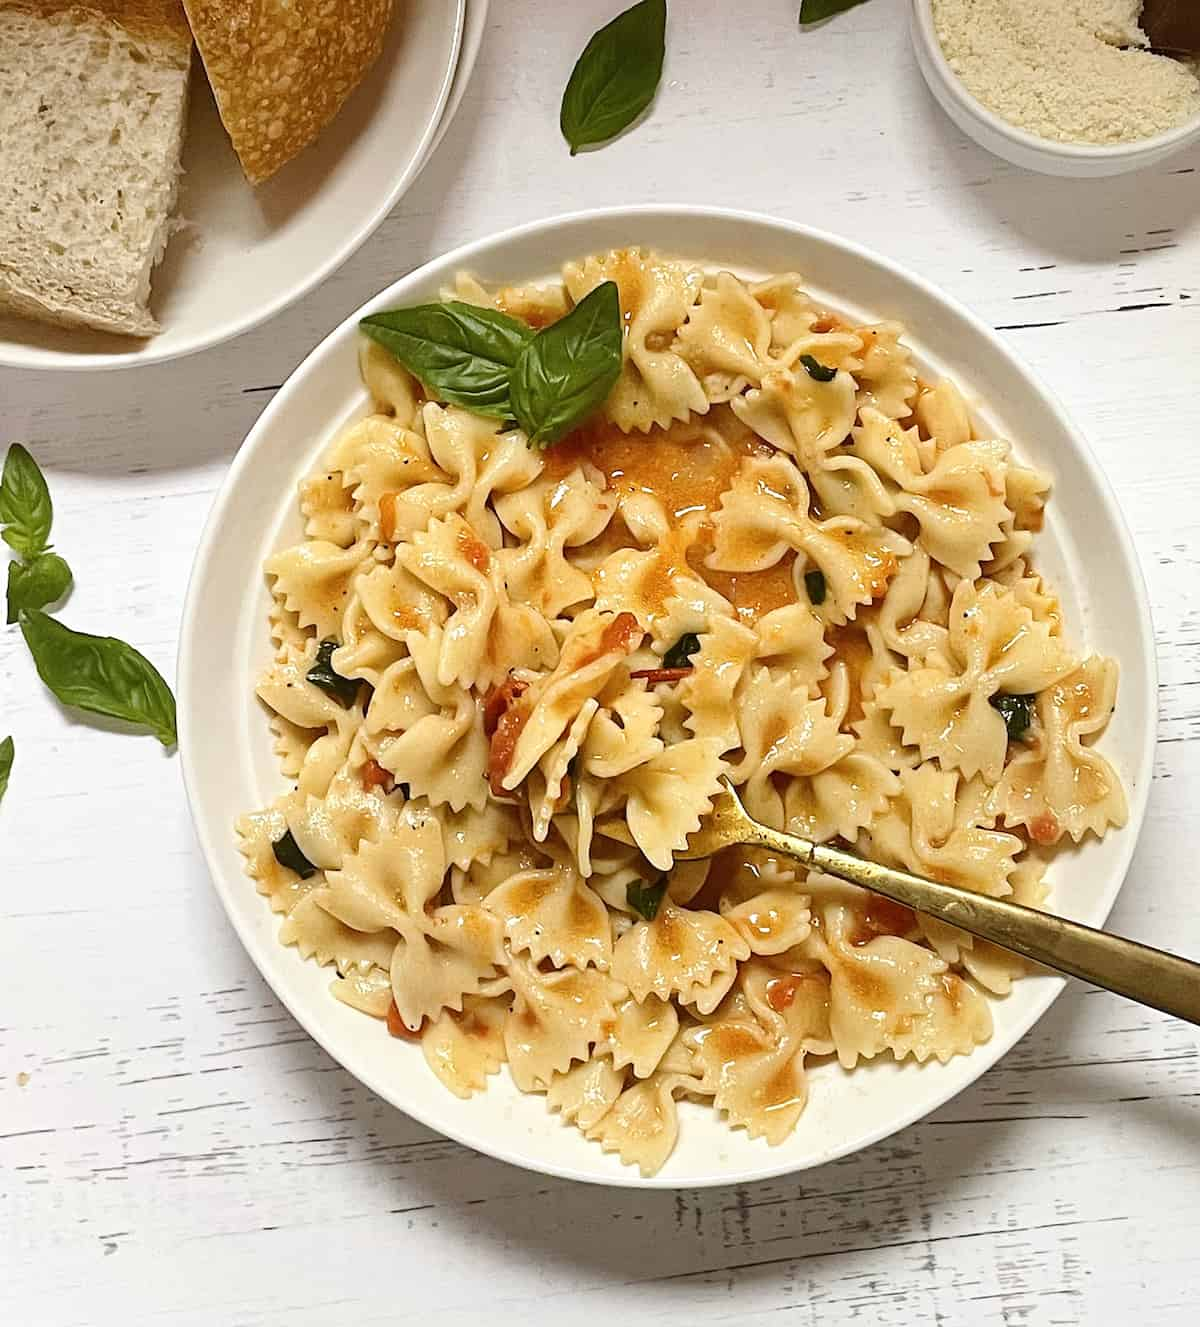 instant pot one pot pasta with bow ties, basil, tomatoes, and parmesan cheese